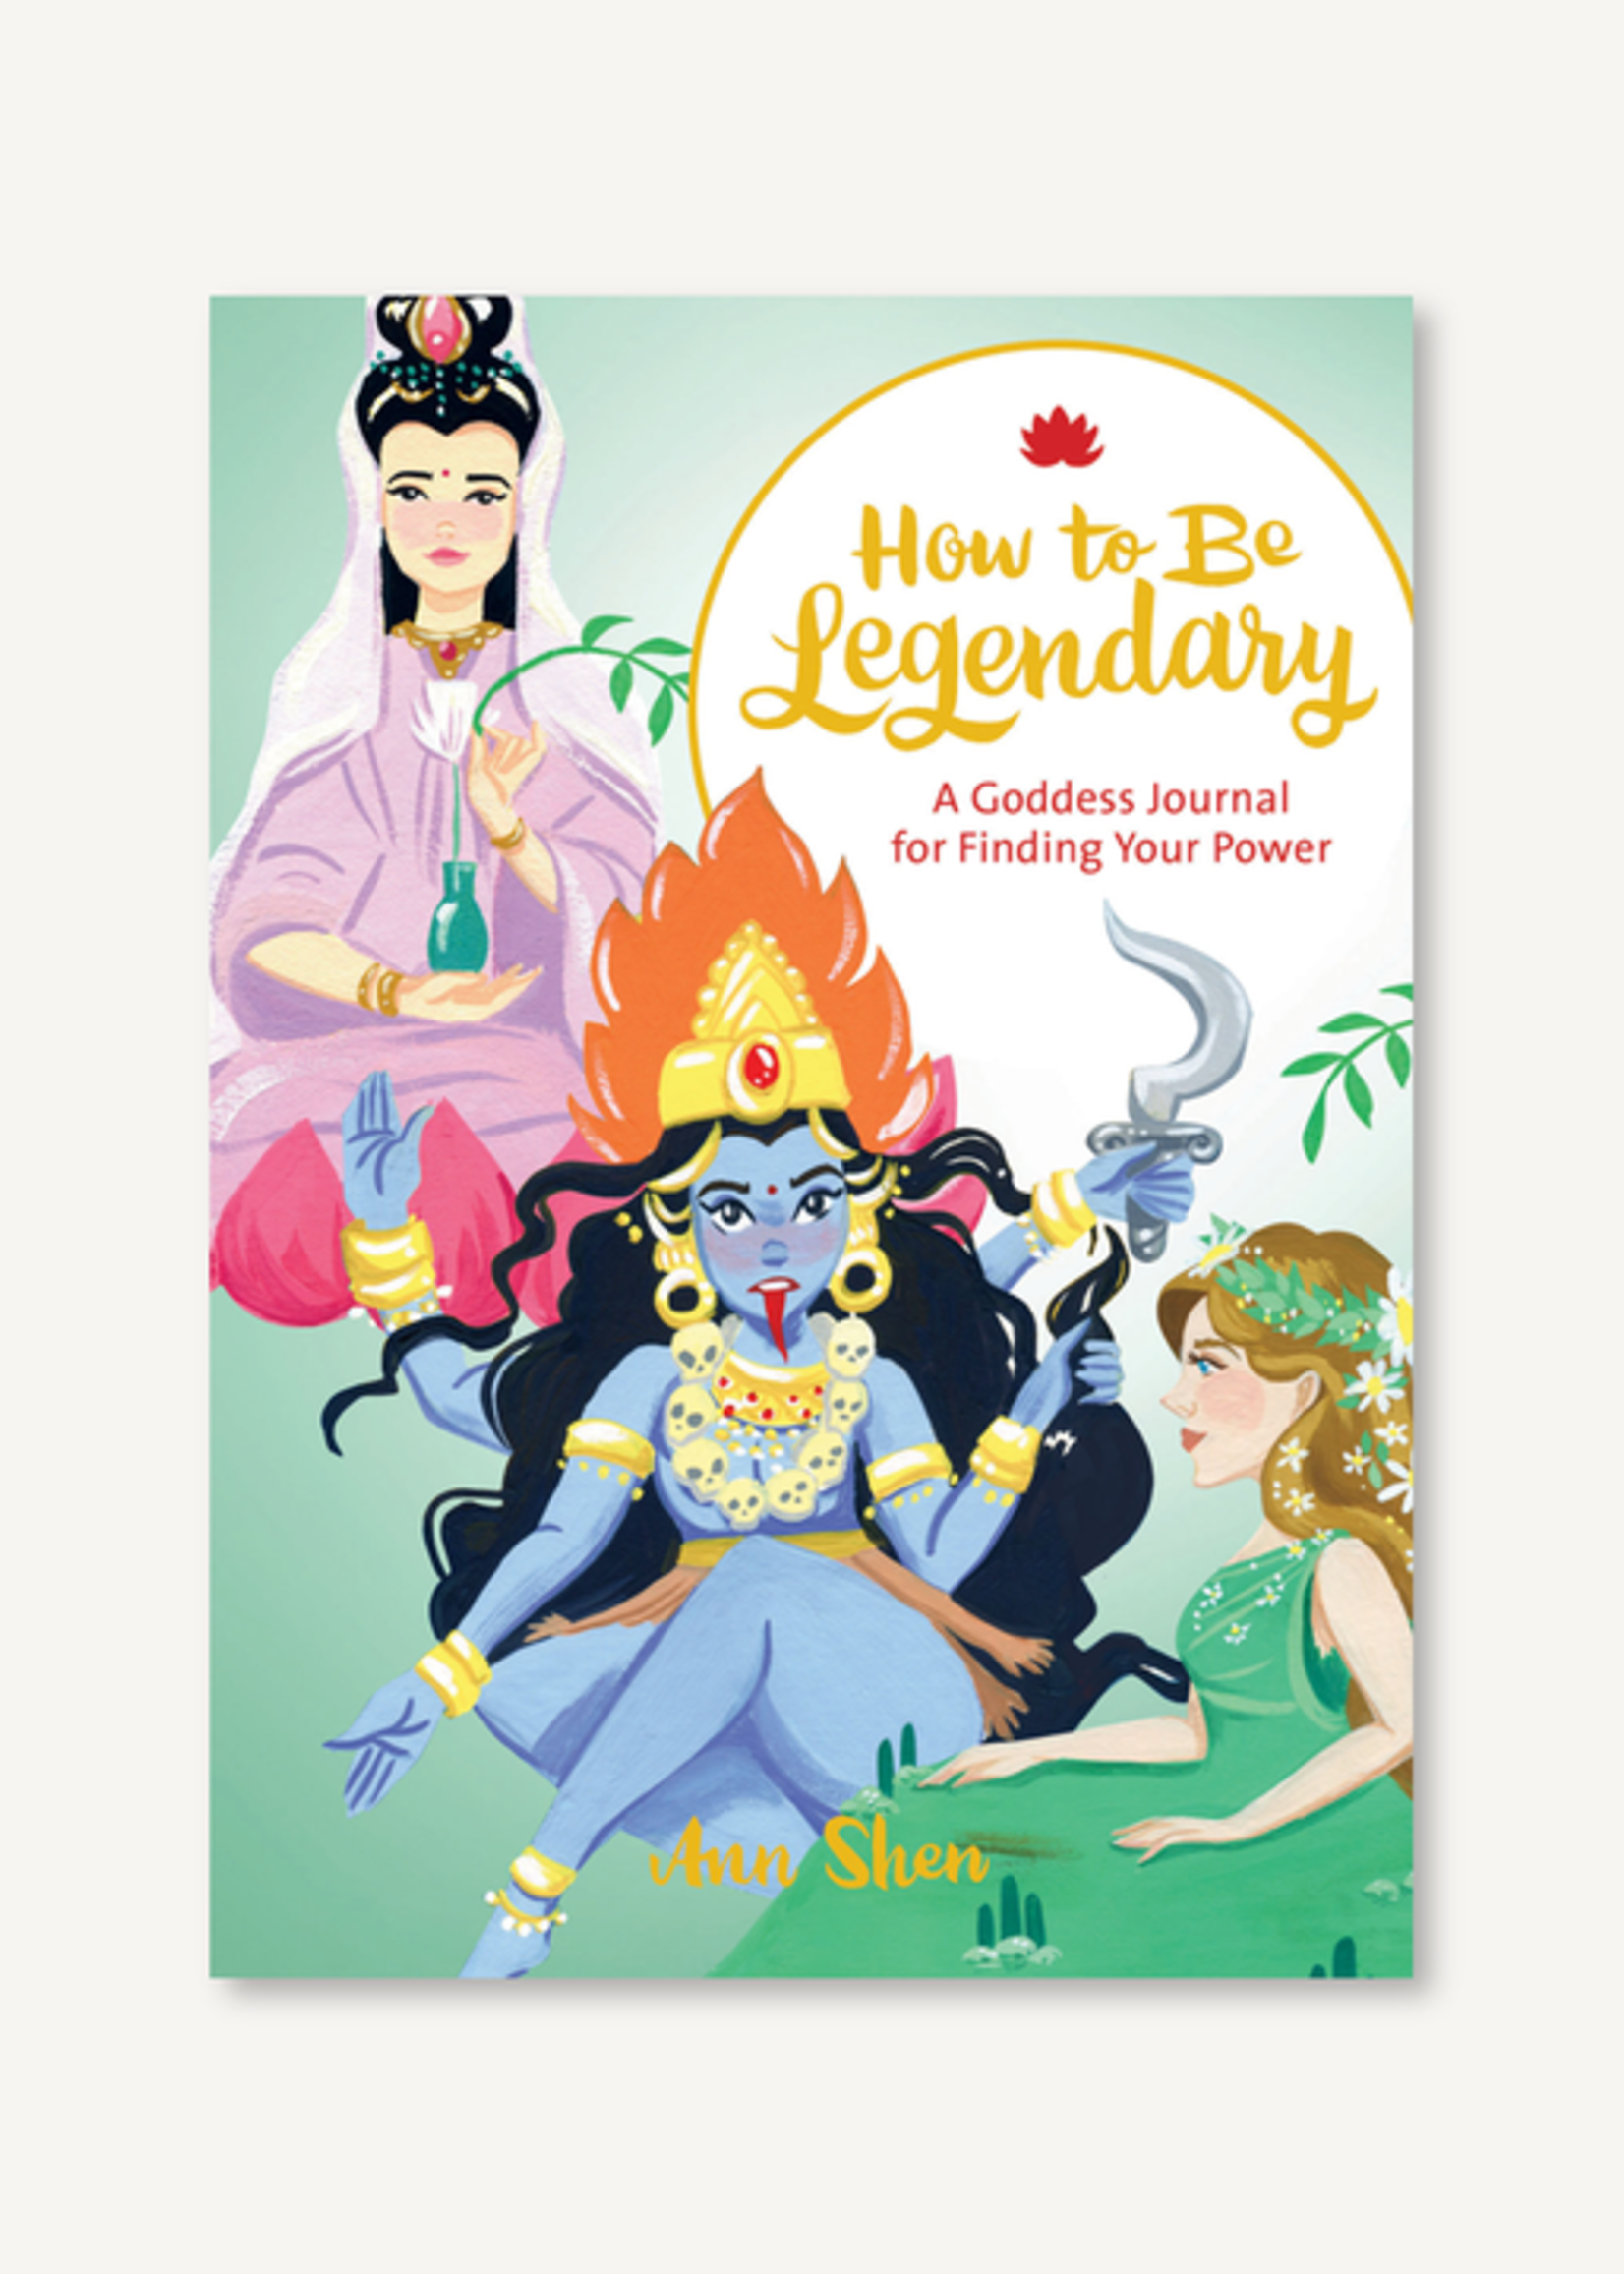 How to Be Legendary A Goddess Journal for Finding Your Power by Ann Shen